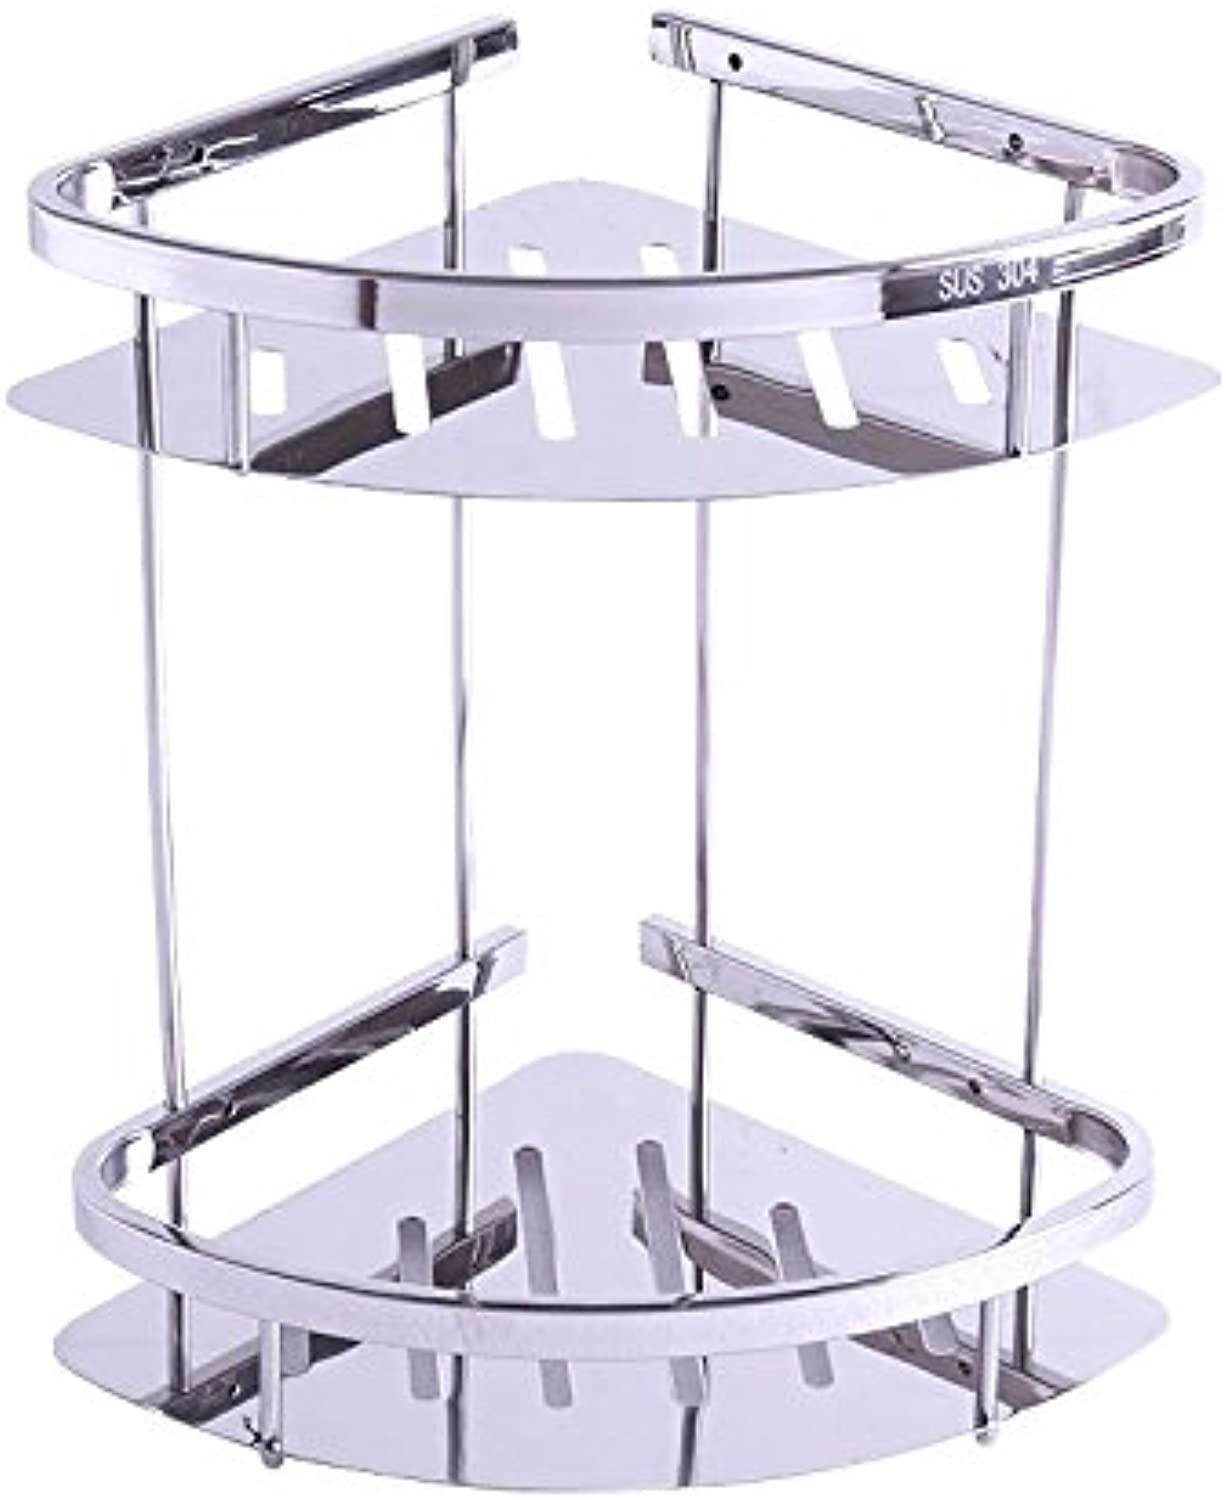 Sanitary stainless steel rack double angle material rack 230230